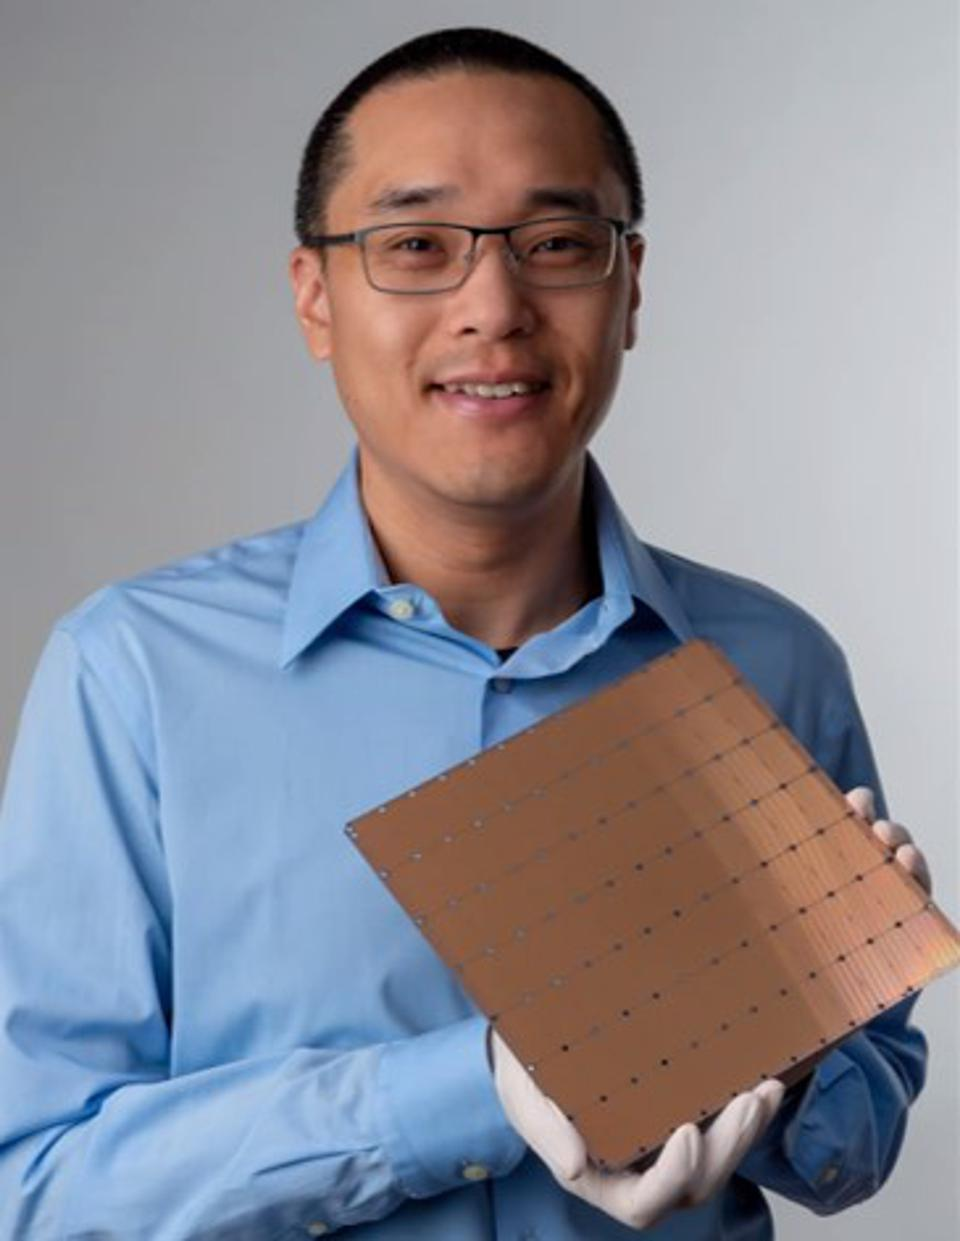 The Cerebras Wafer Scale Engine is the first wafer-scale solution for AI